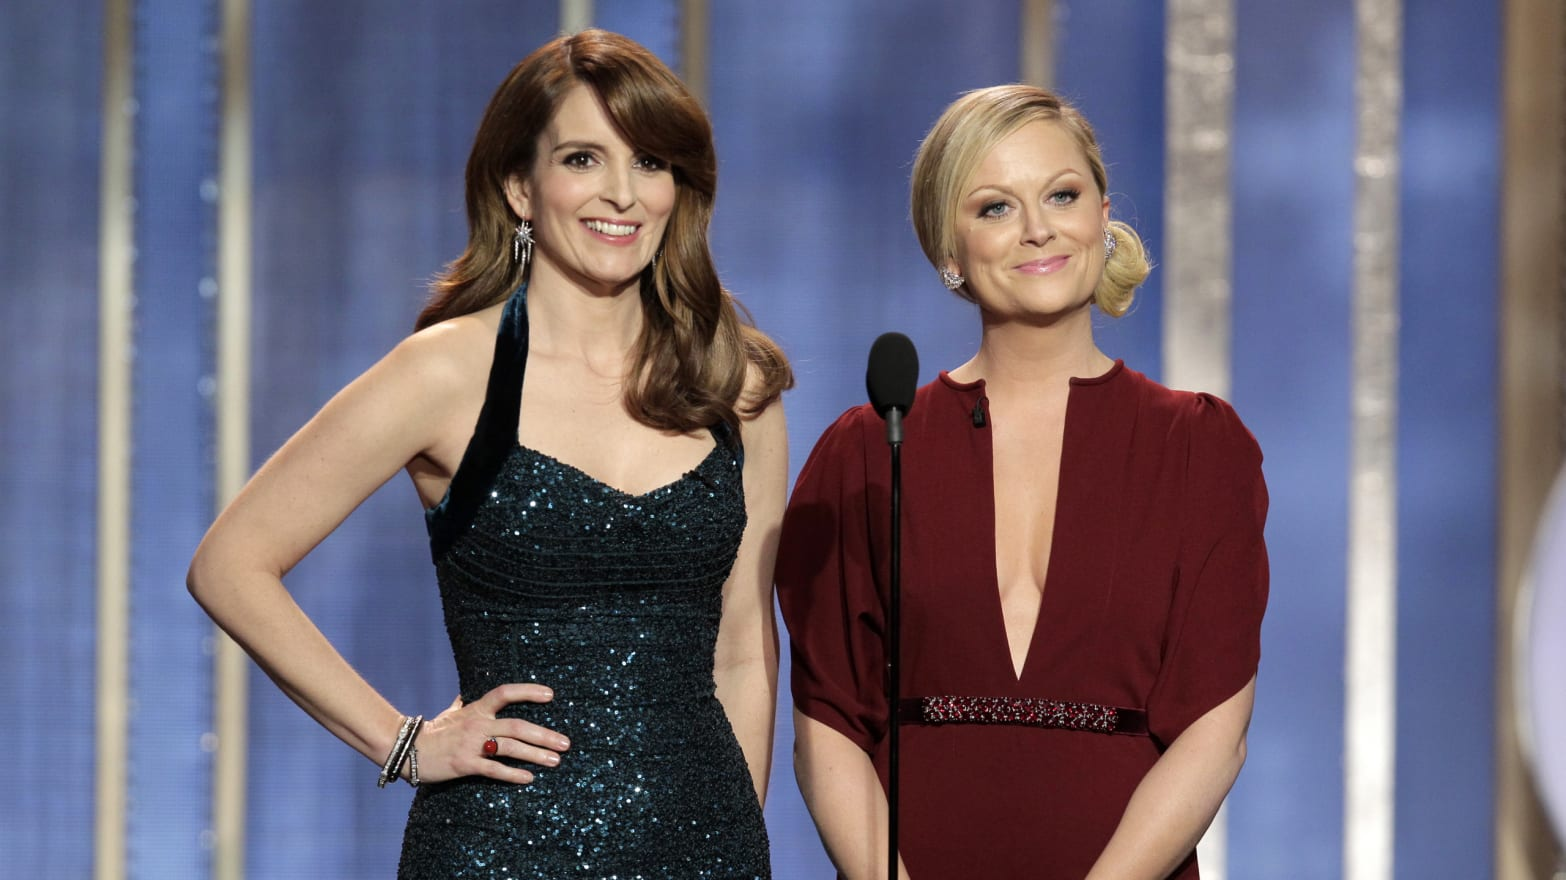 Golden Globes 2013: Amy Poehler, Tina Fey & More Best Moments (VIDEO)